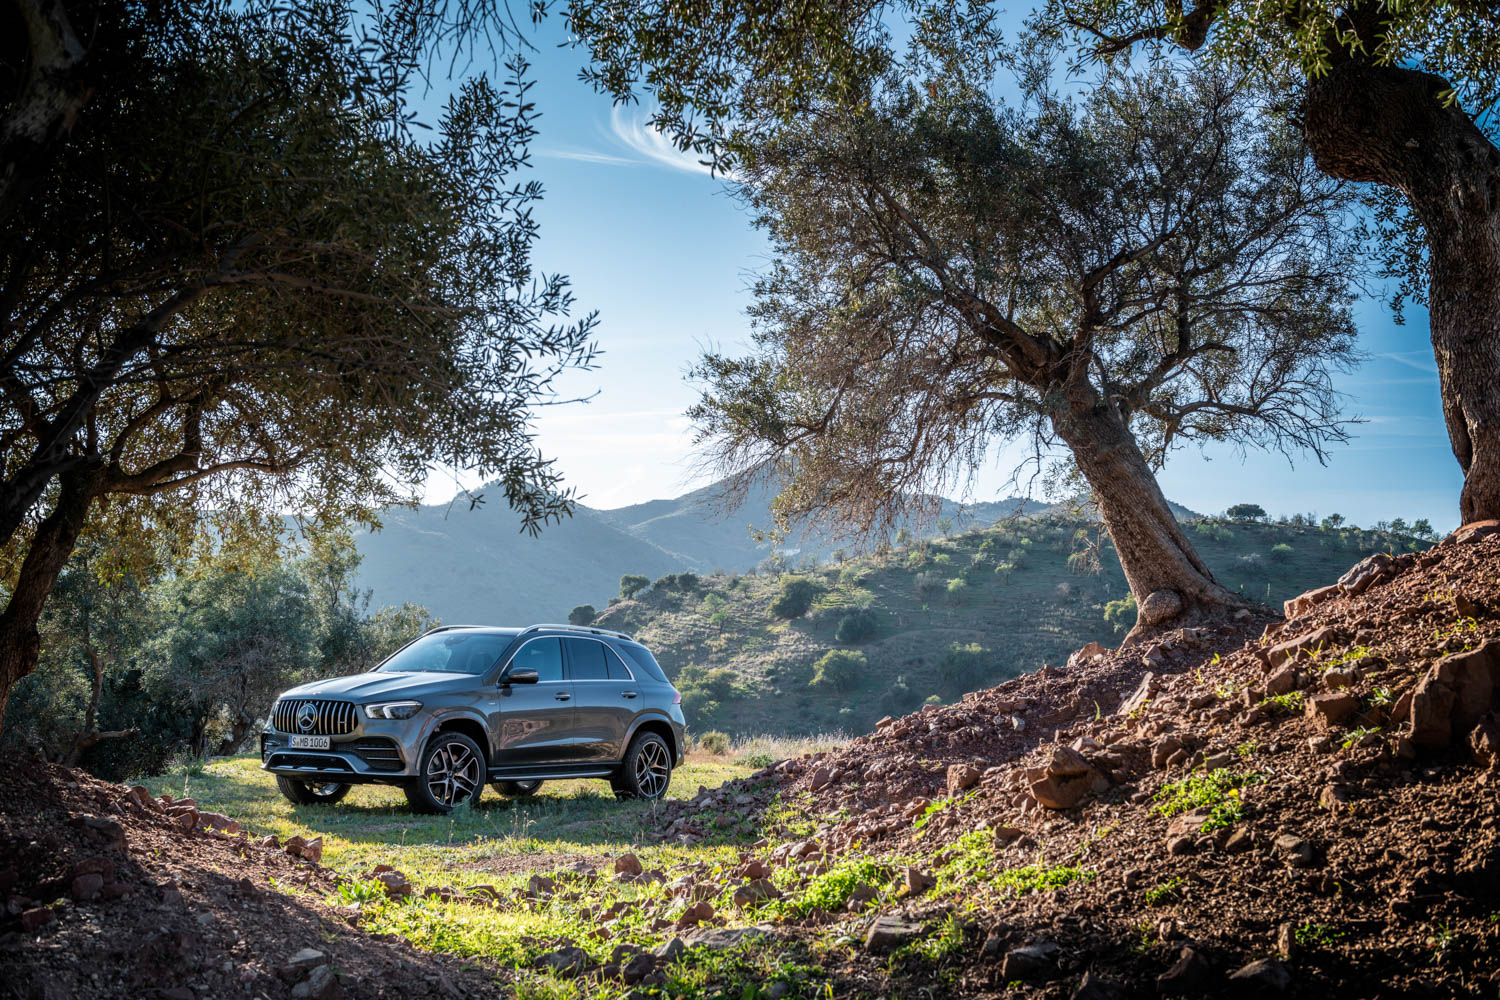 Mercedes-AMG GLE 53 in the mountains